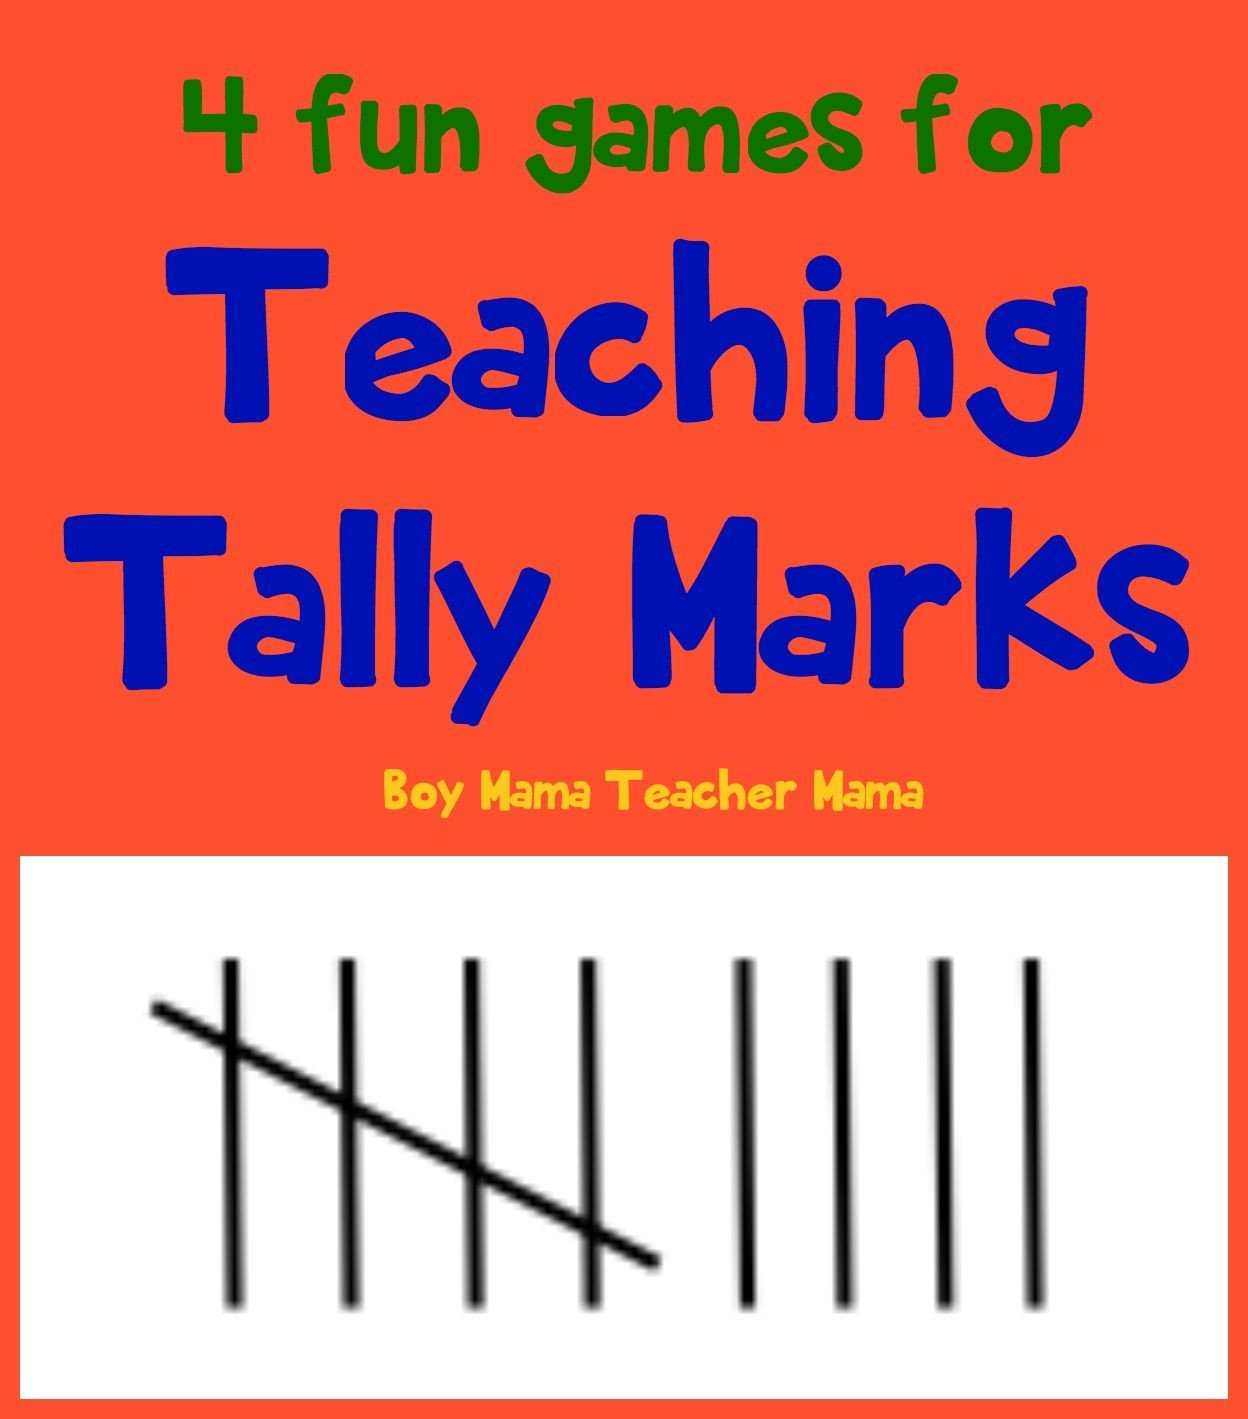 Kindergarten Tally Marks Worksheet Teacher Mama 4 Fun Games for Teaching Tally Marks after